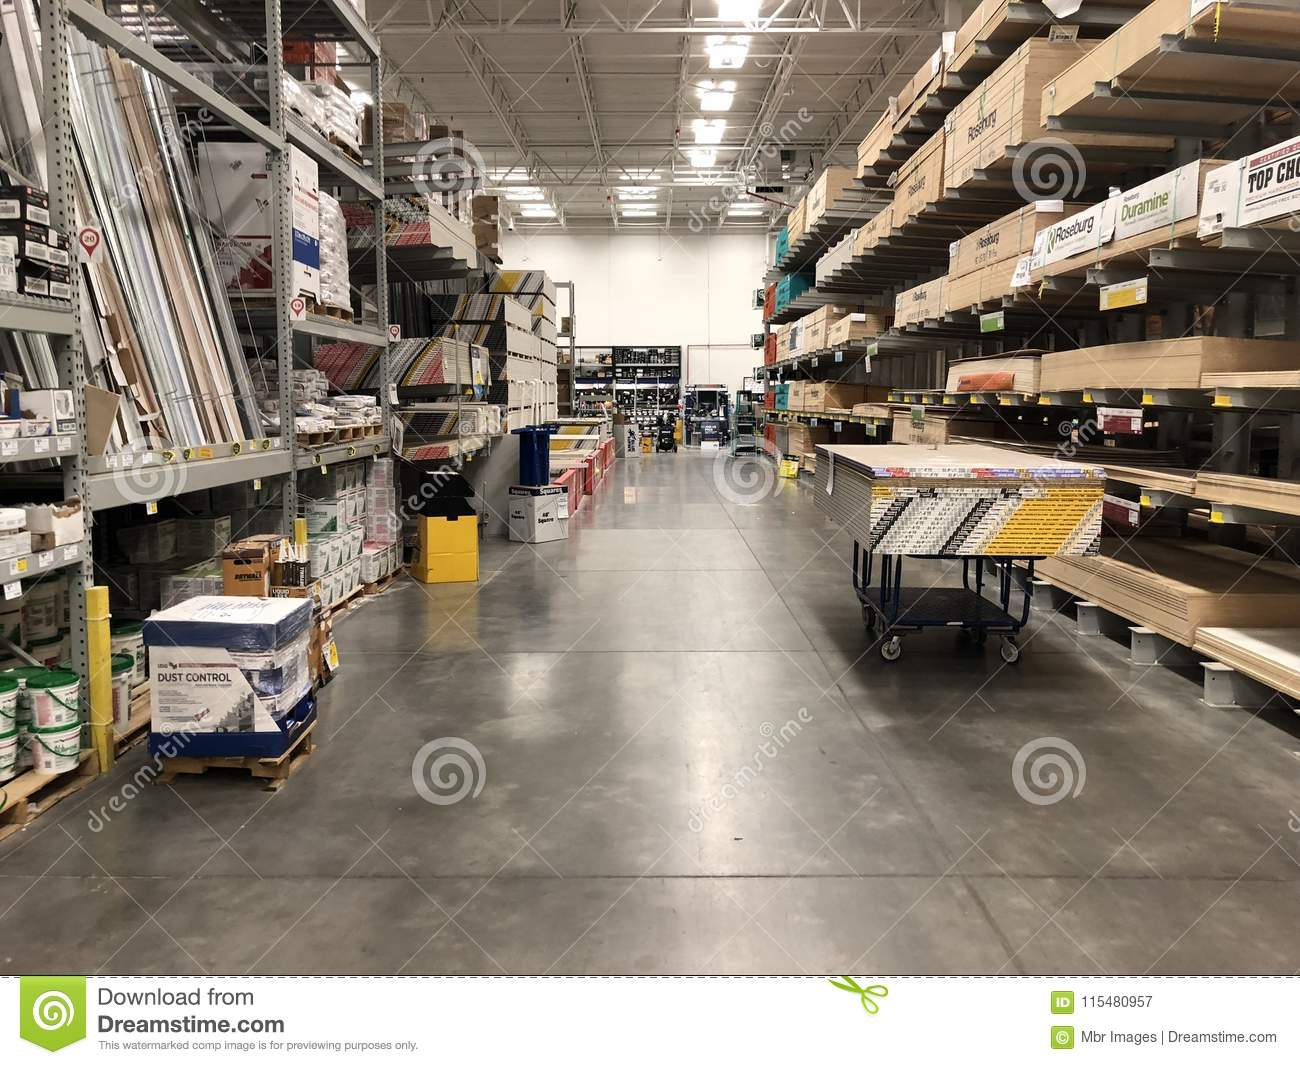 https www dreamstime com lowes home improvement store lumber department lowes u s based chain retail home improvement appliance stores image115480957